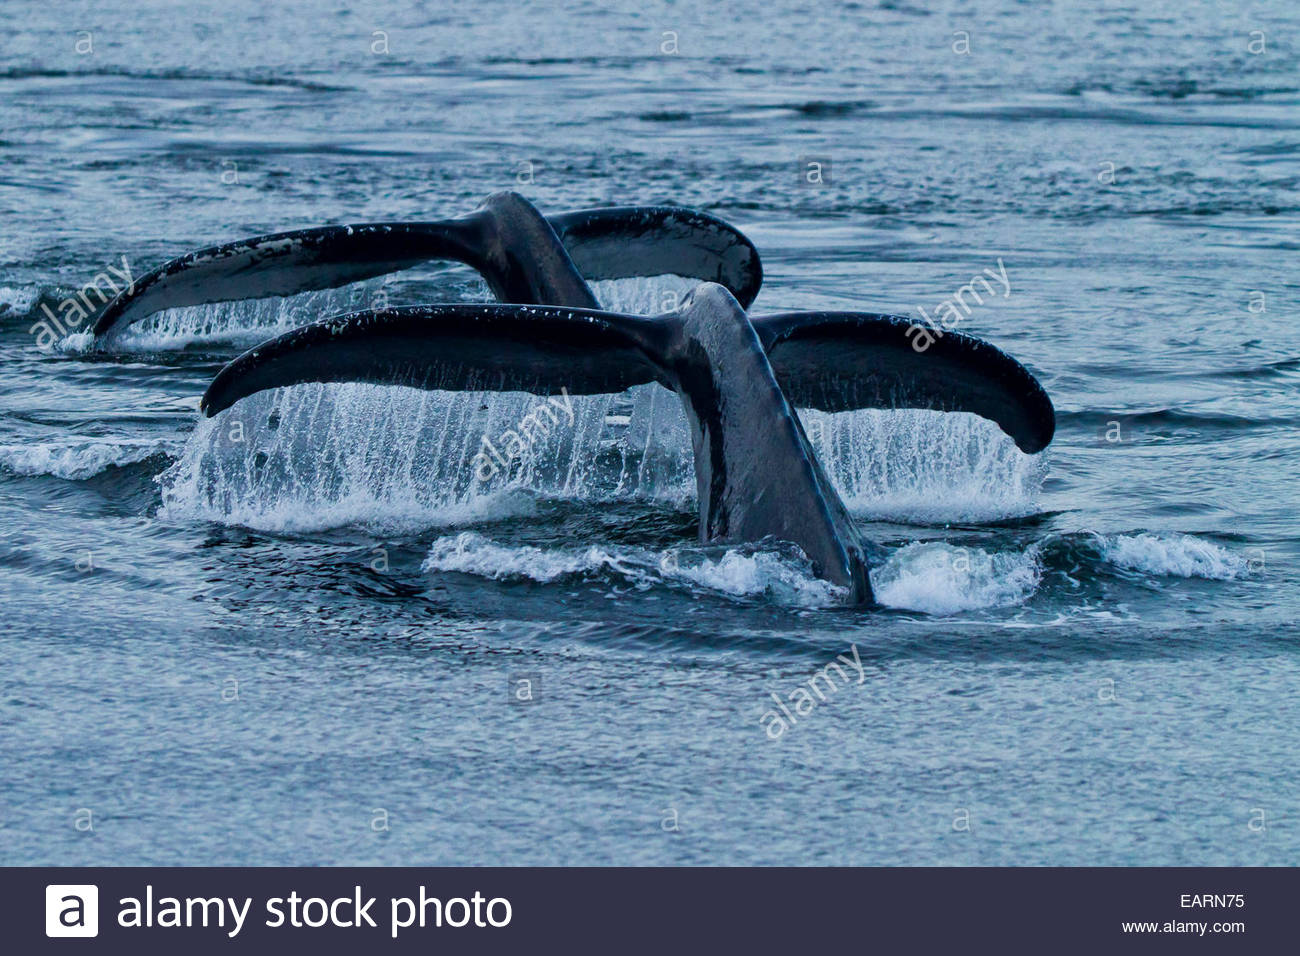 Two humpback whale flukes rise from the ocean. - Stock Image